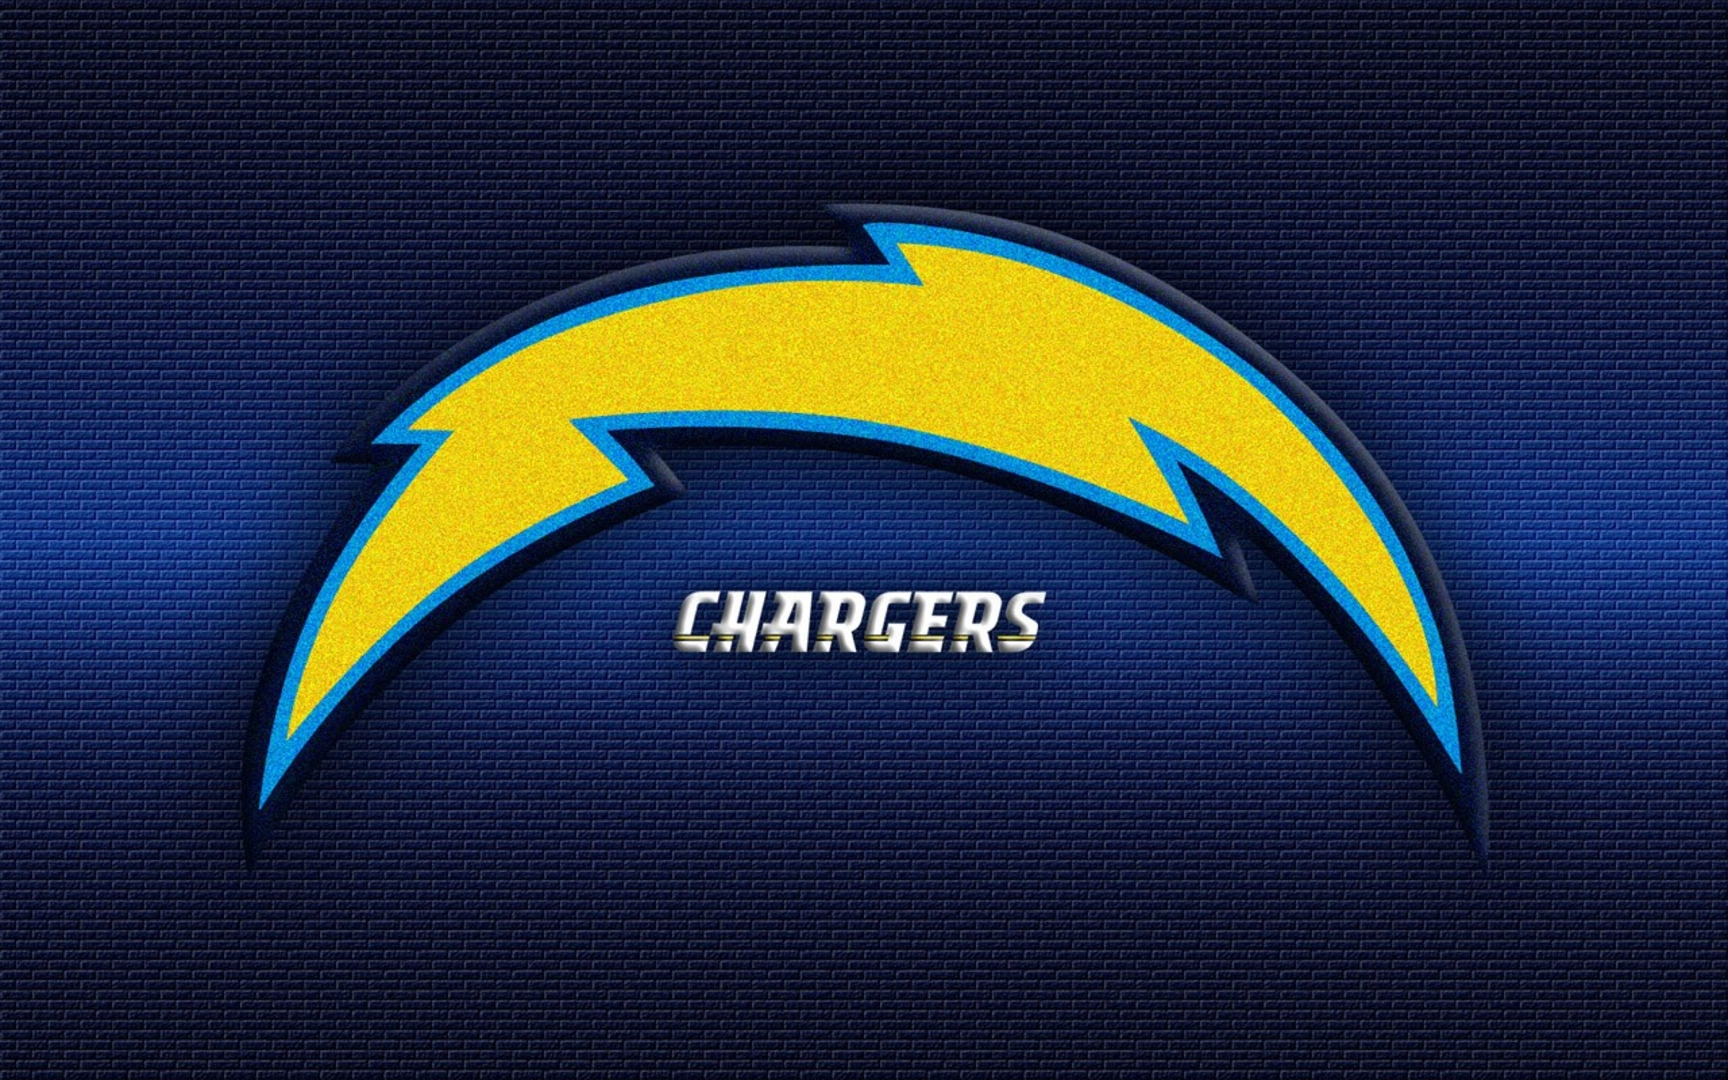 Chargers Wallpapers Free Wallpapersafari